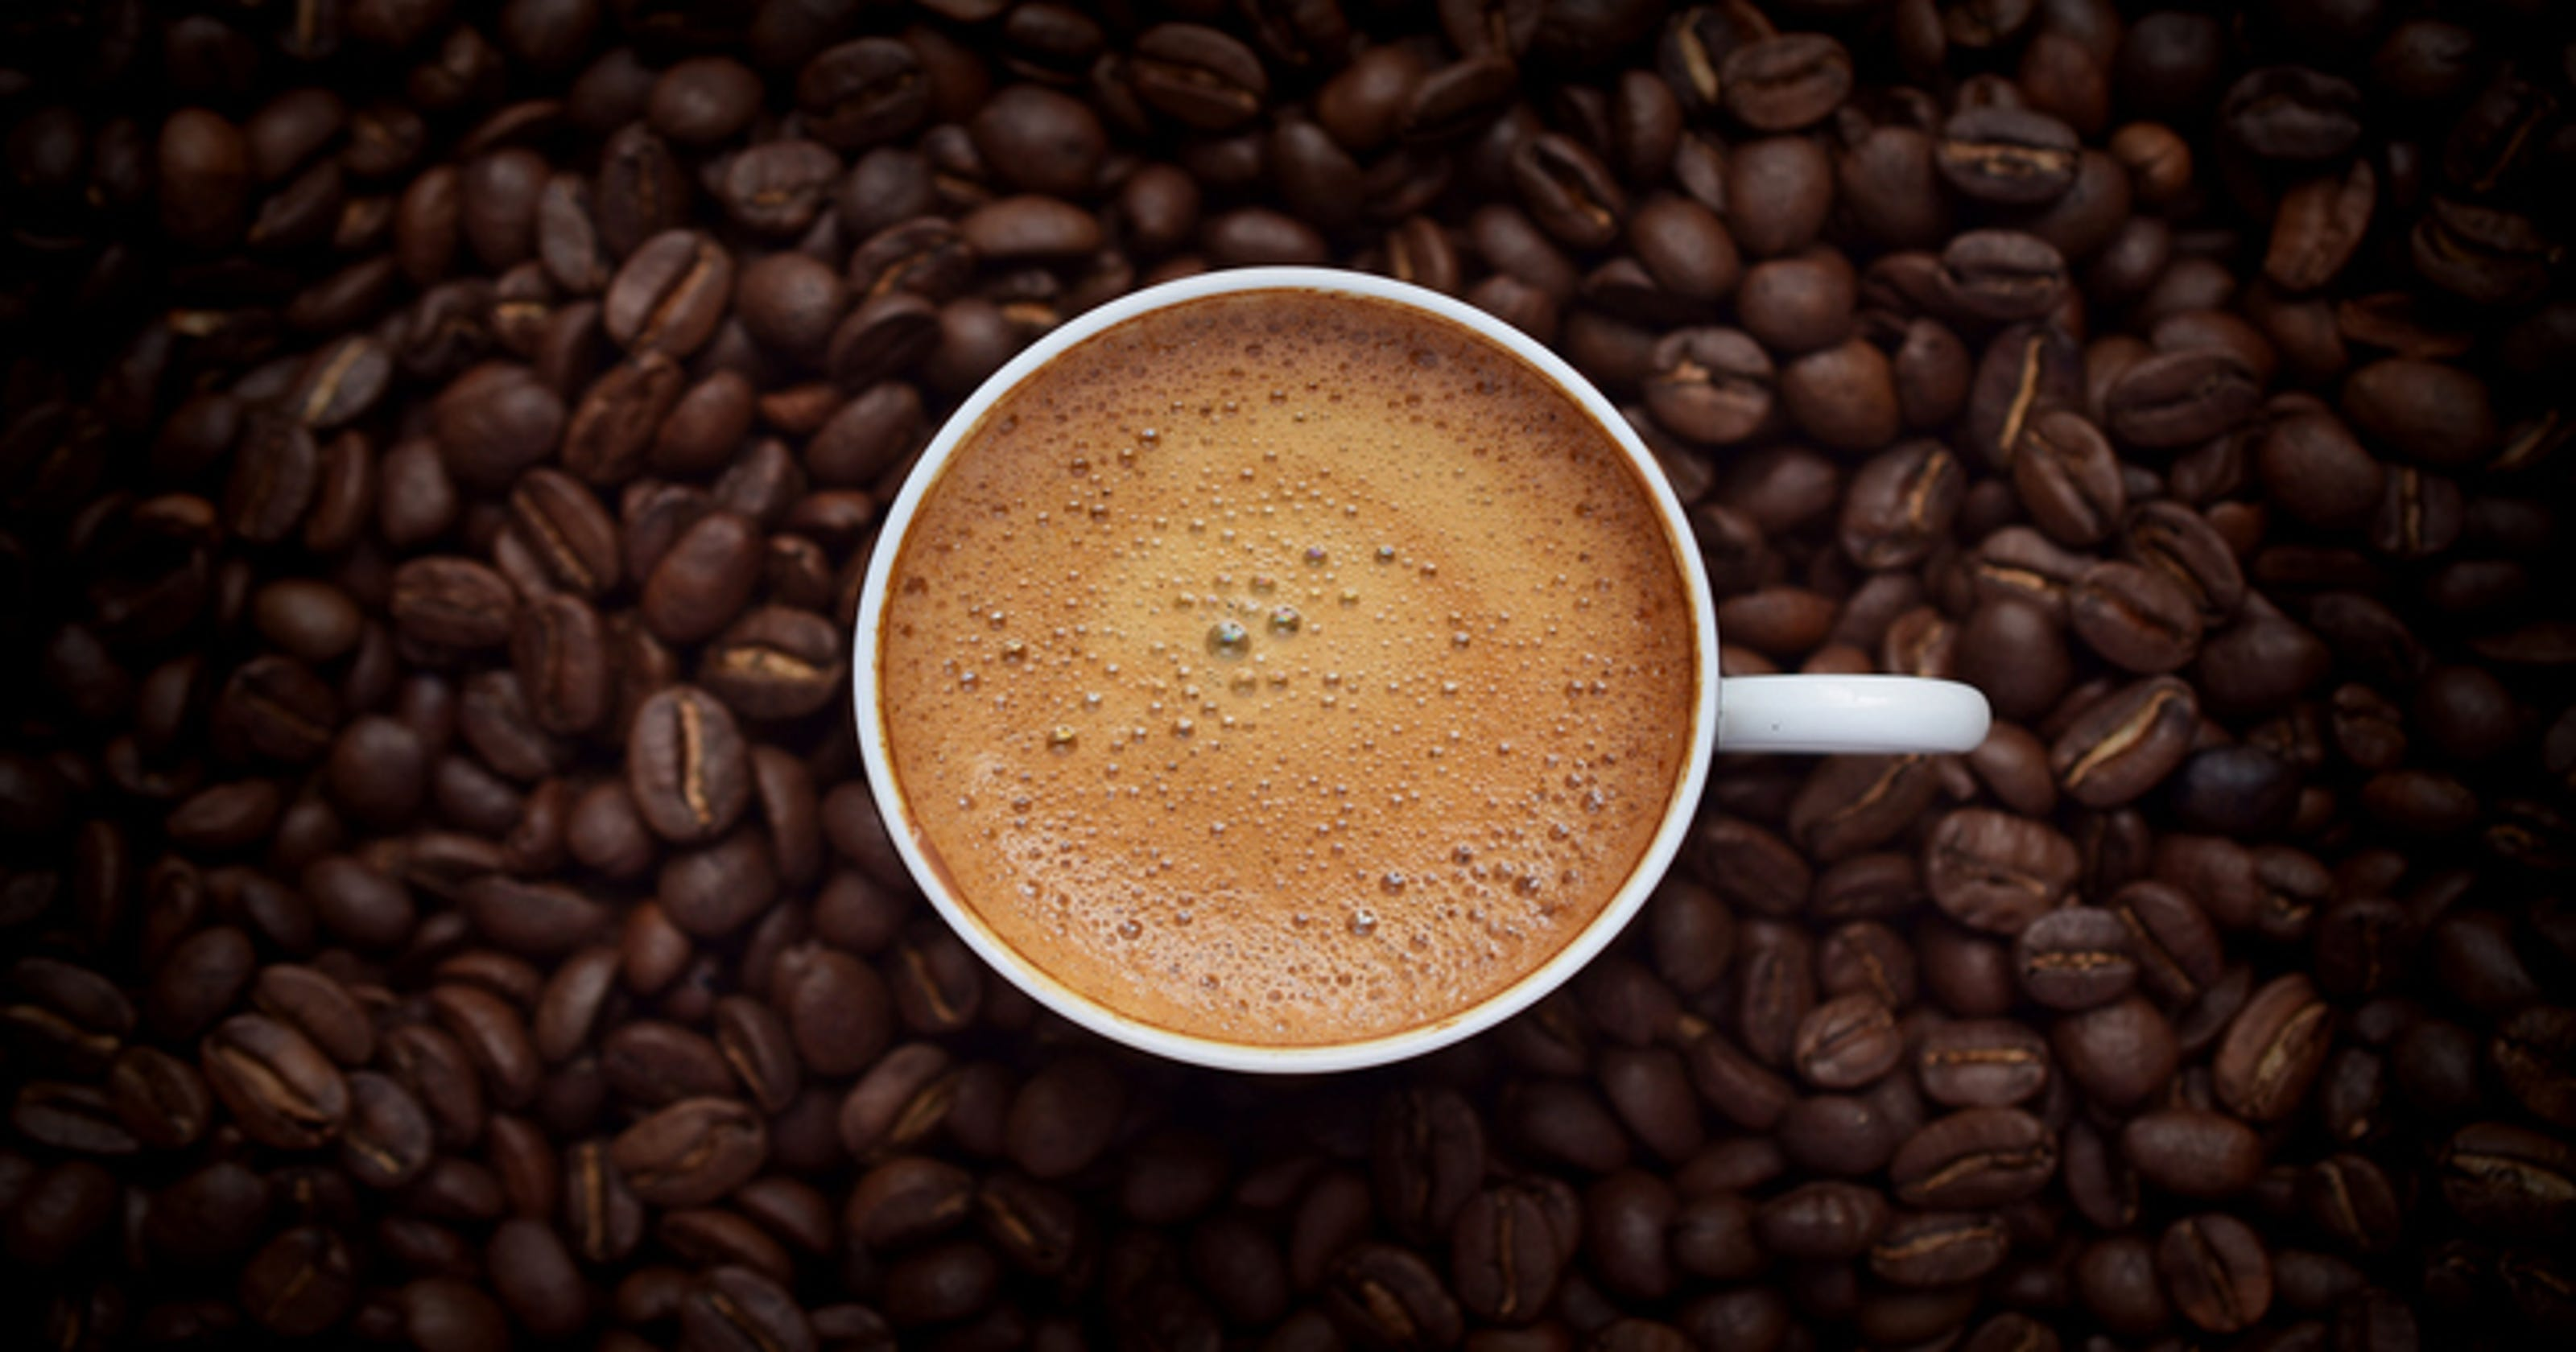 Catch up on coffee culture at your Abilene Public Library